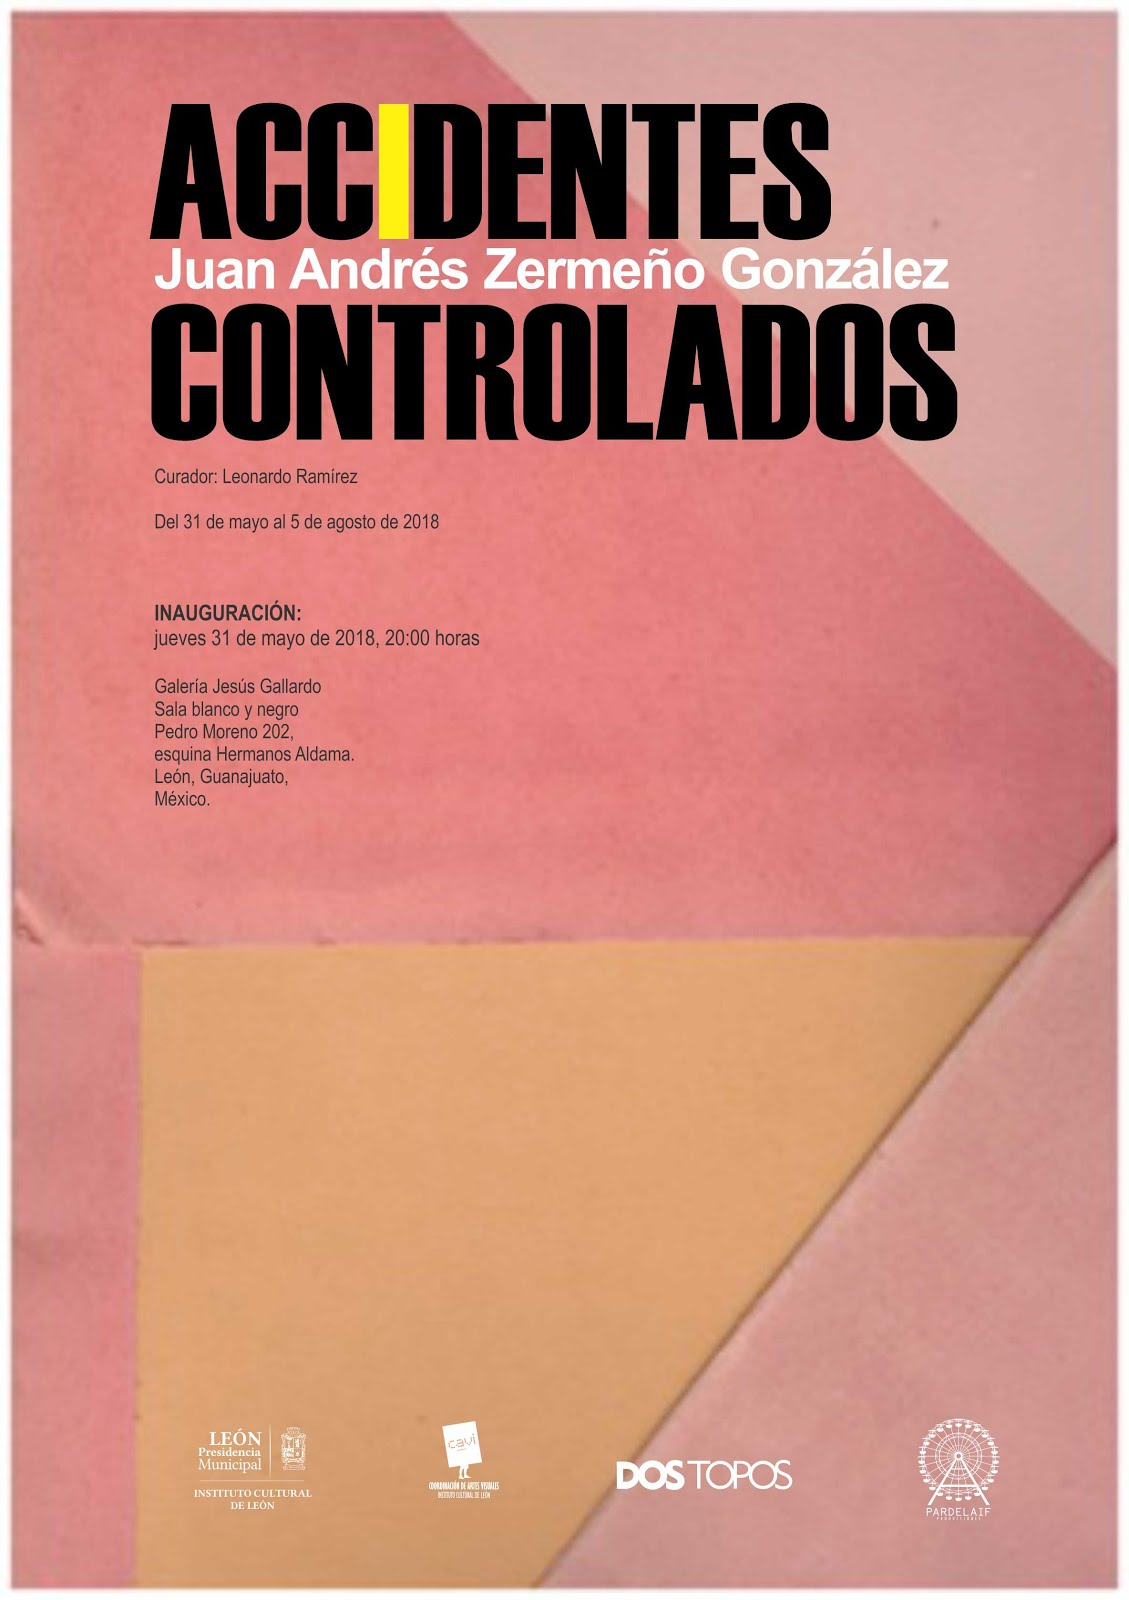 Accidentes controlados